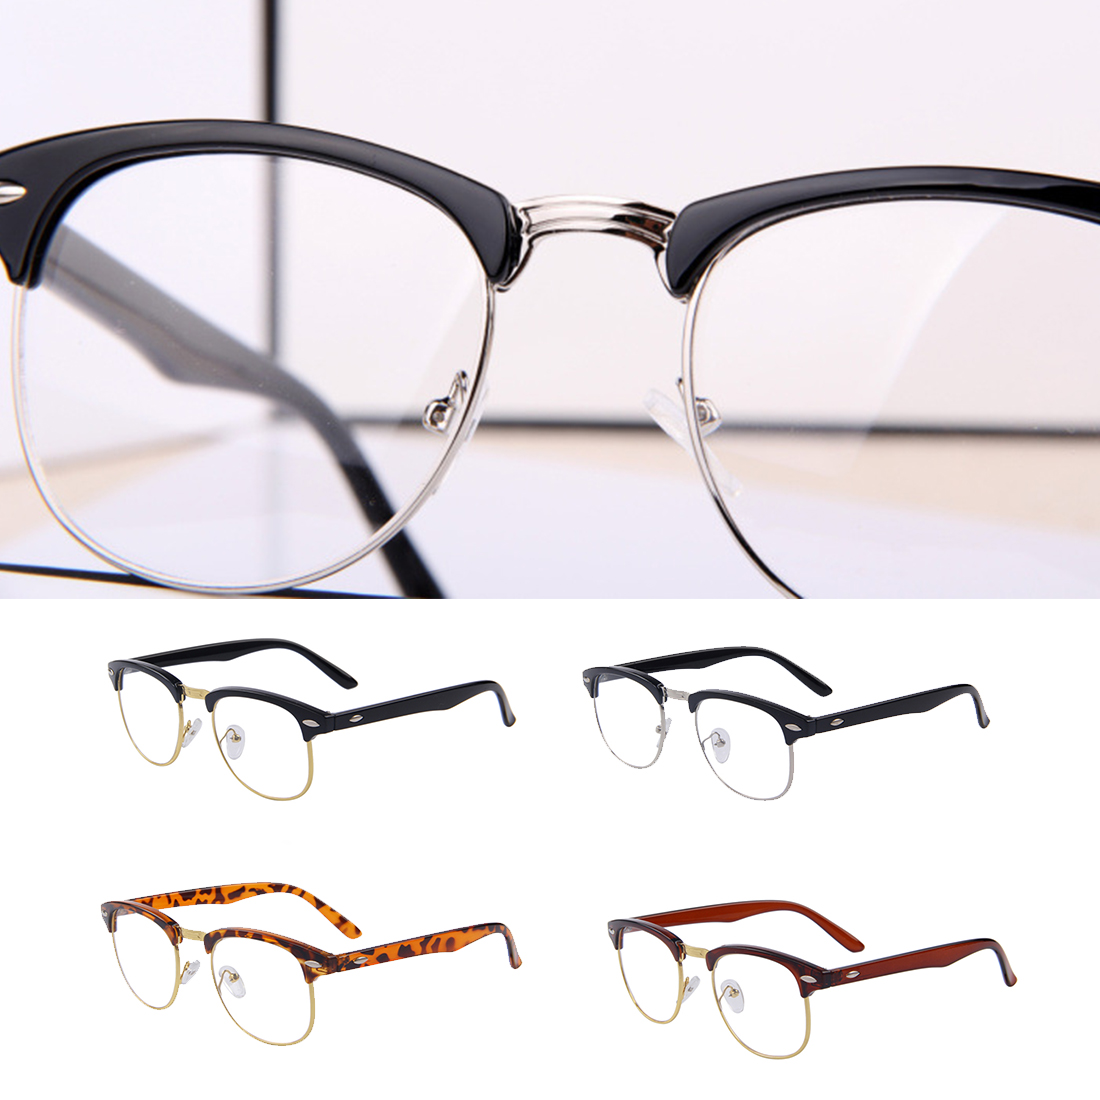 2016 1Pc Classic Retro Clear Lens Nerd Frames Glasses ...